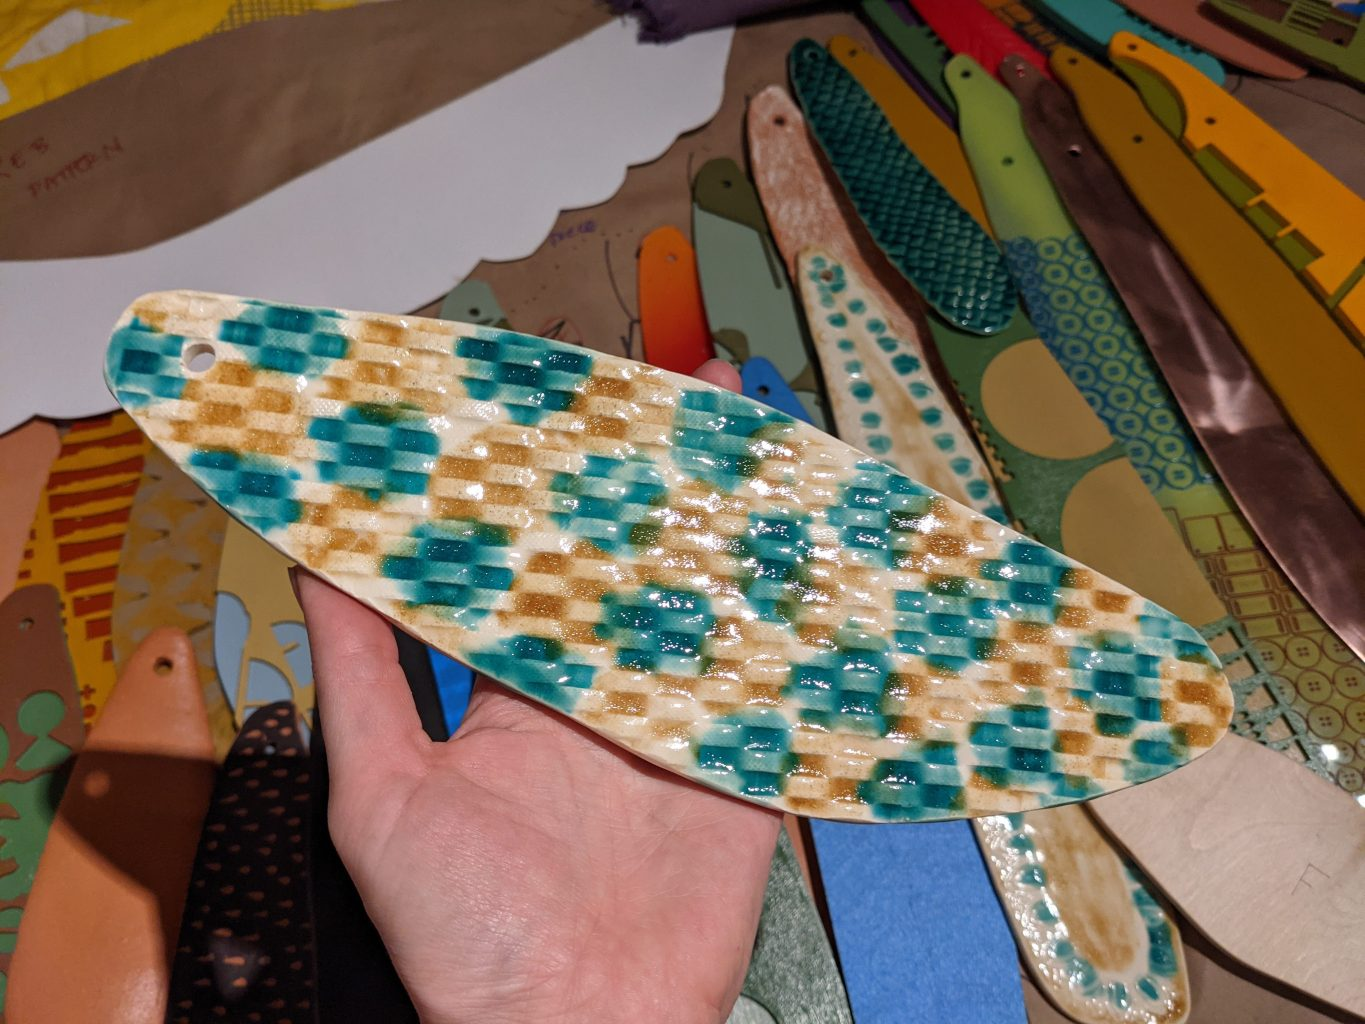 Flat, feather shaped, ceramic piece with turquoise and deep orange glaze held in a hand above father shape cut outs of other materials